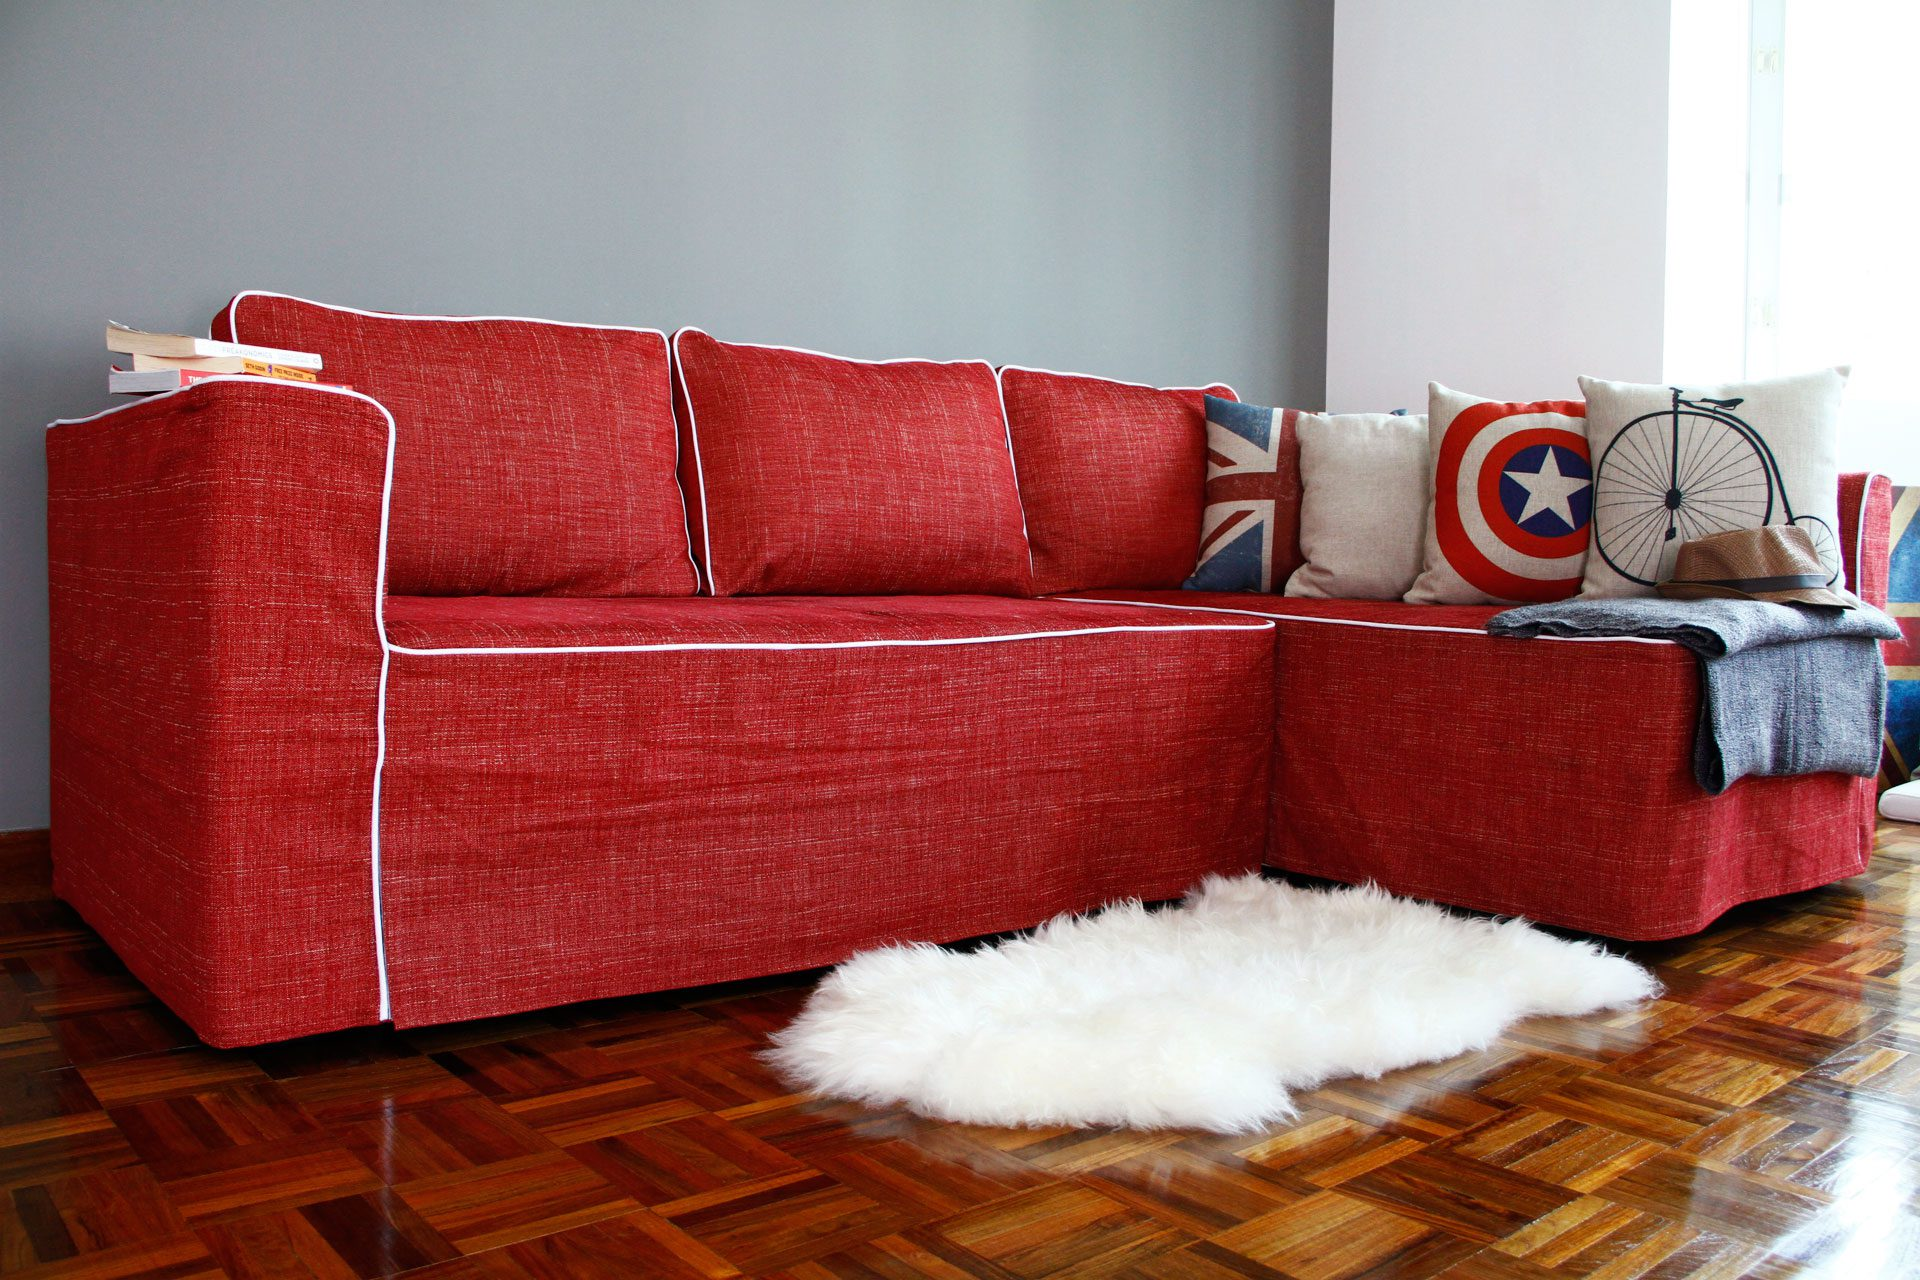 IKEA Manstad Sofa with slipcover from Comfort Works with Nomad Red fabric customized with white contrast piping